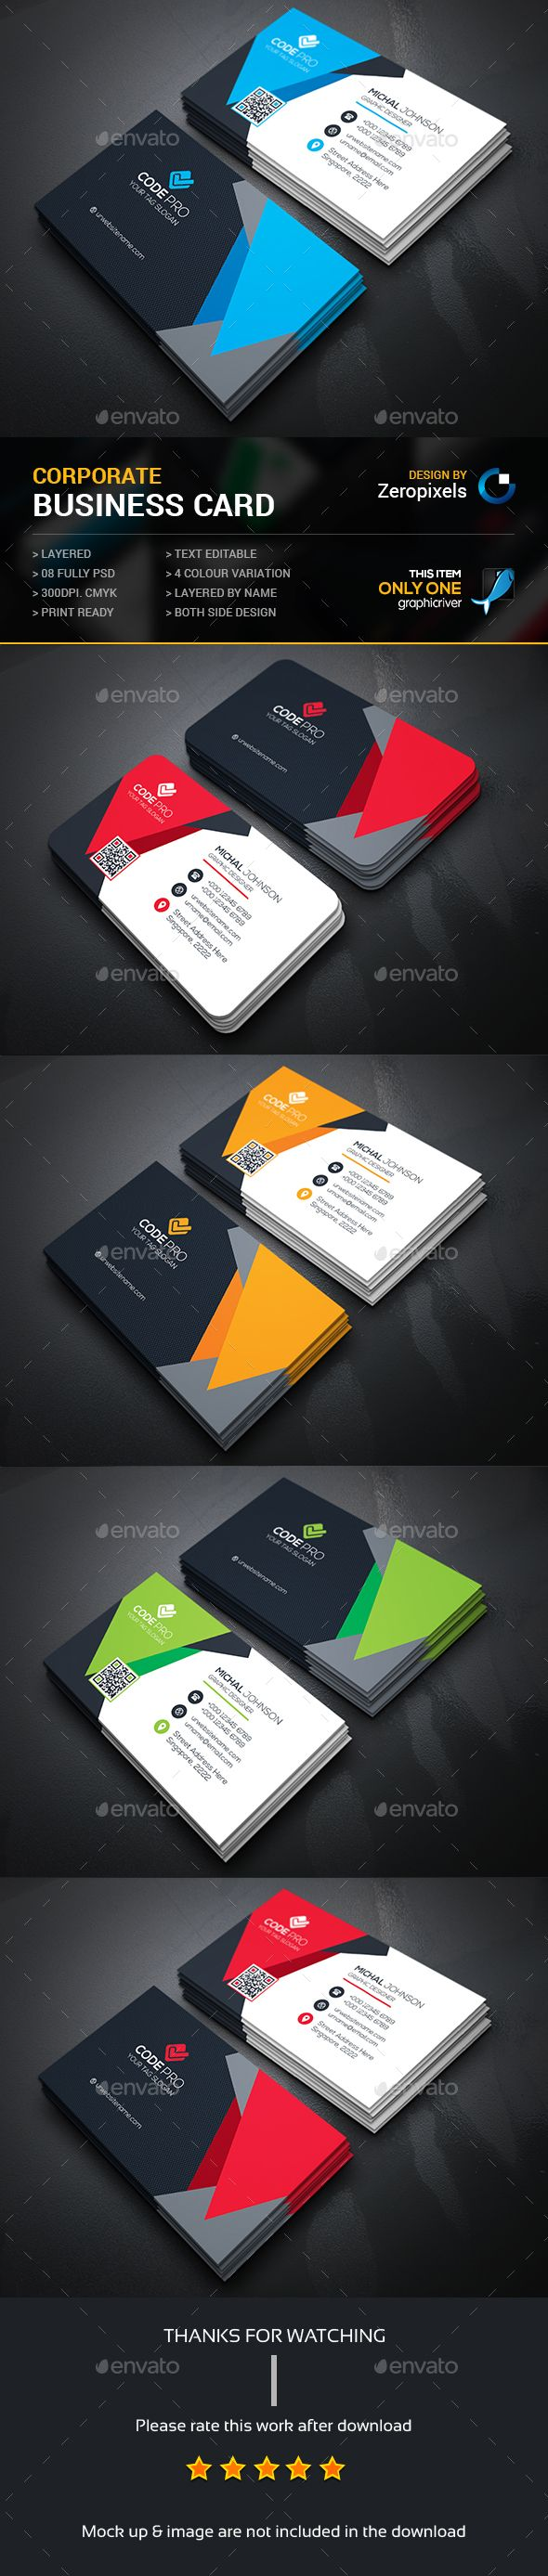 Business Card — Photoshop PSD #bundle #flyer • Available here → https://graphicriver.net/item/business-card/15233627?ref=pxcr